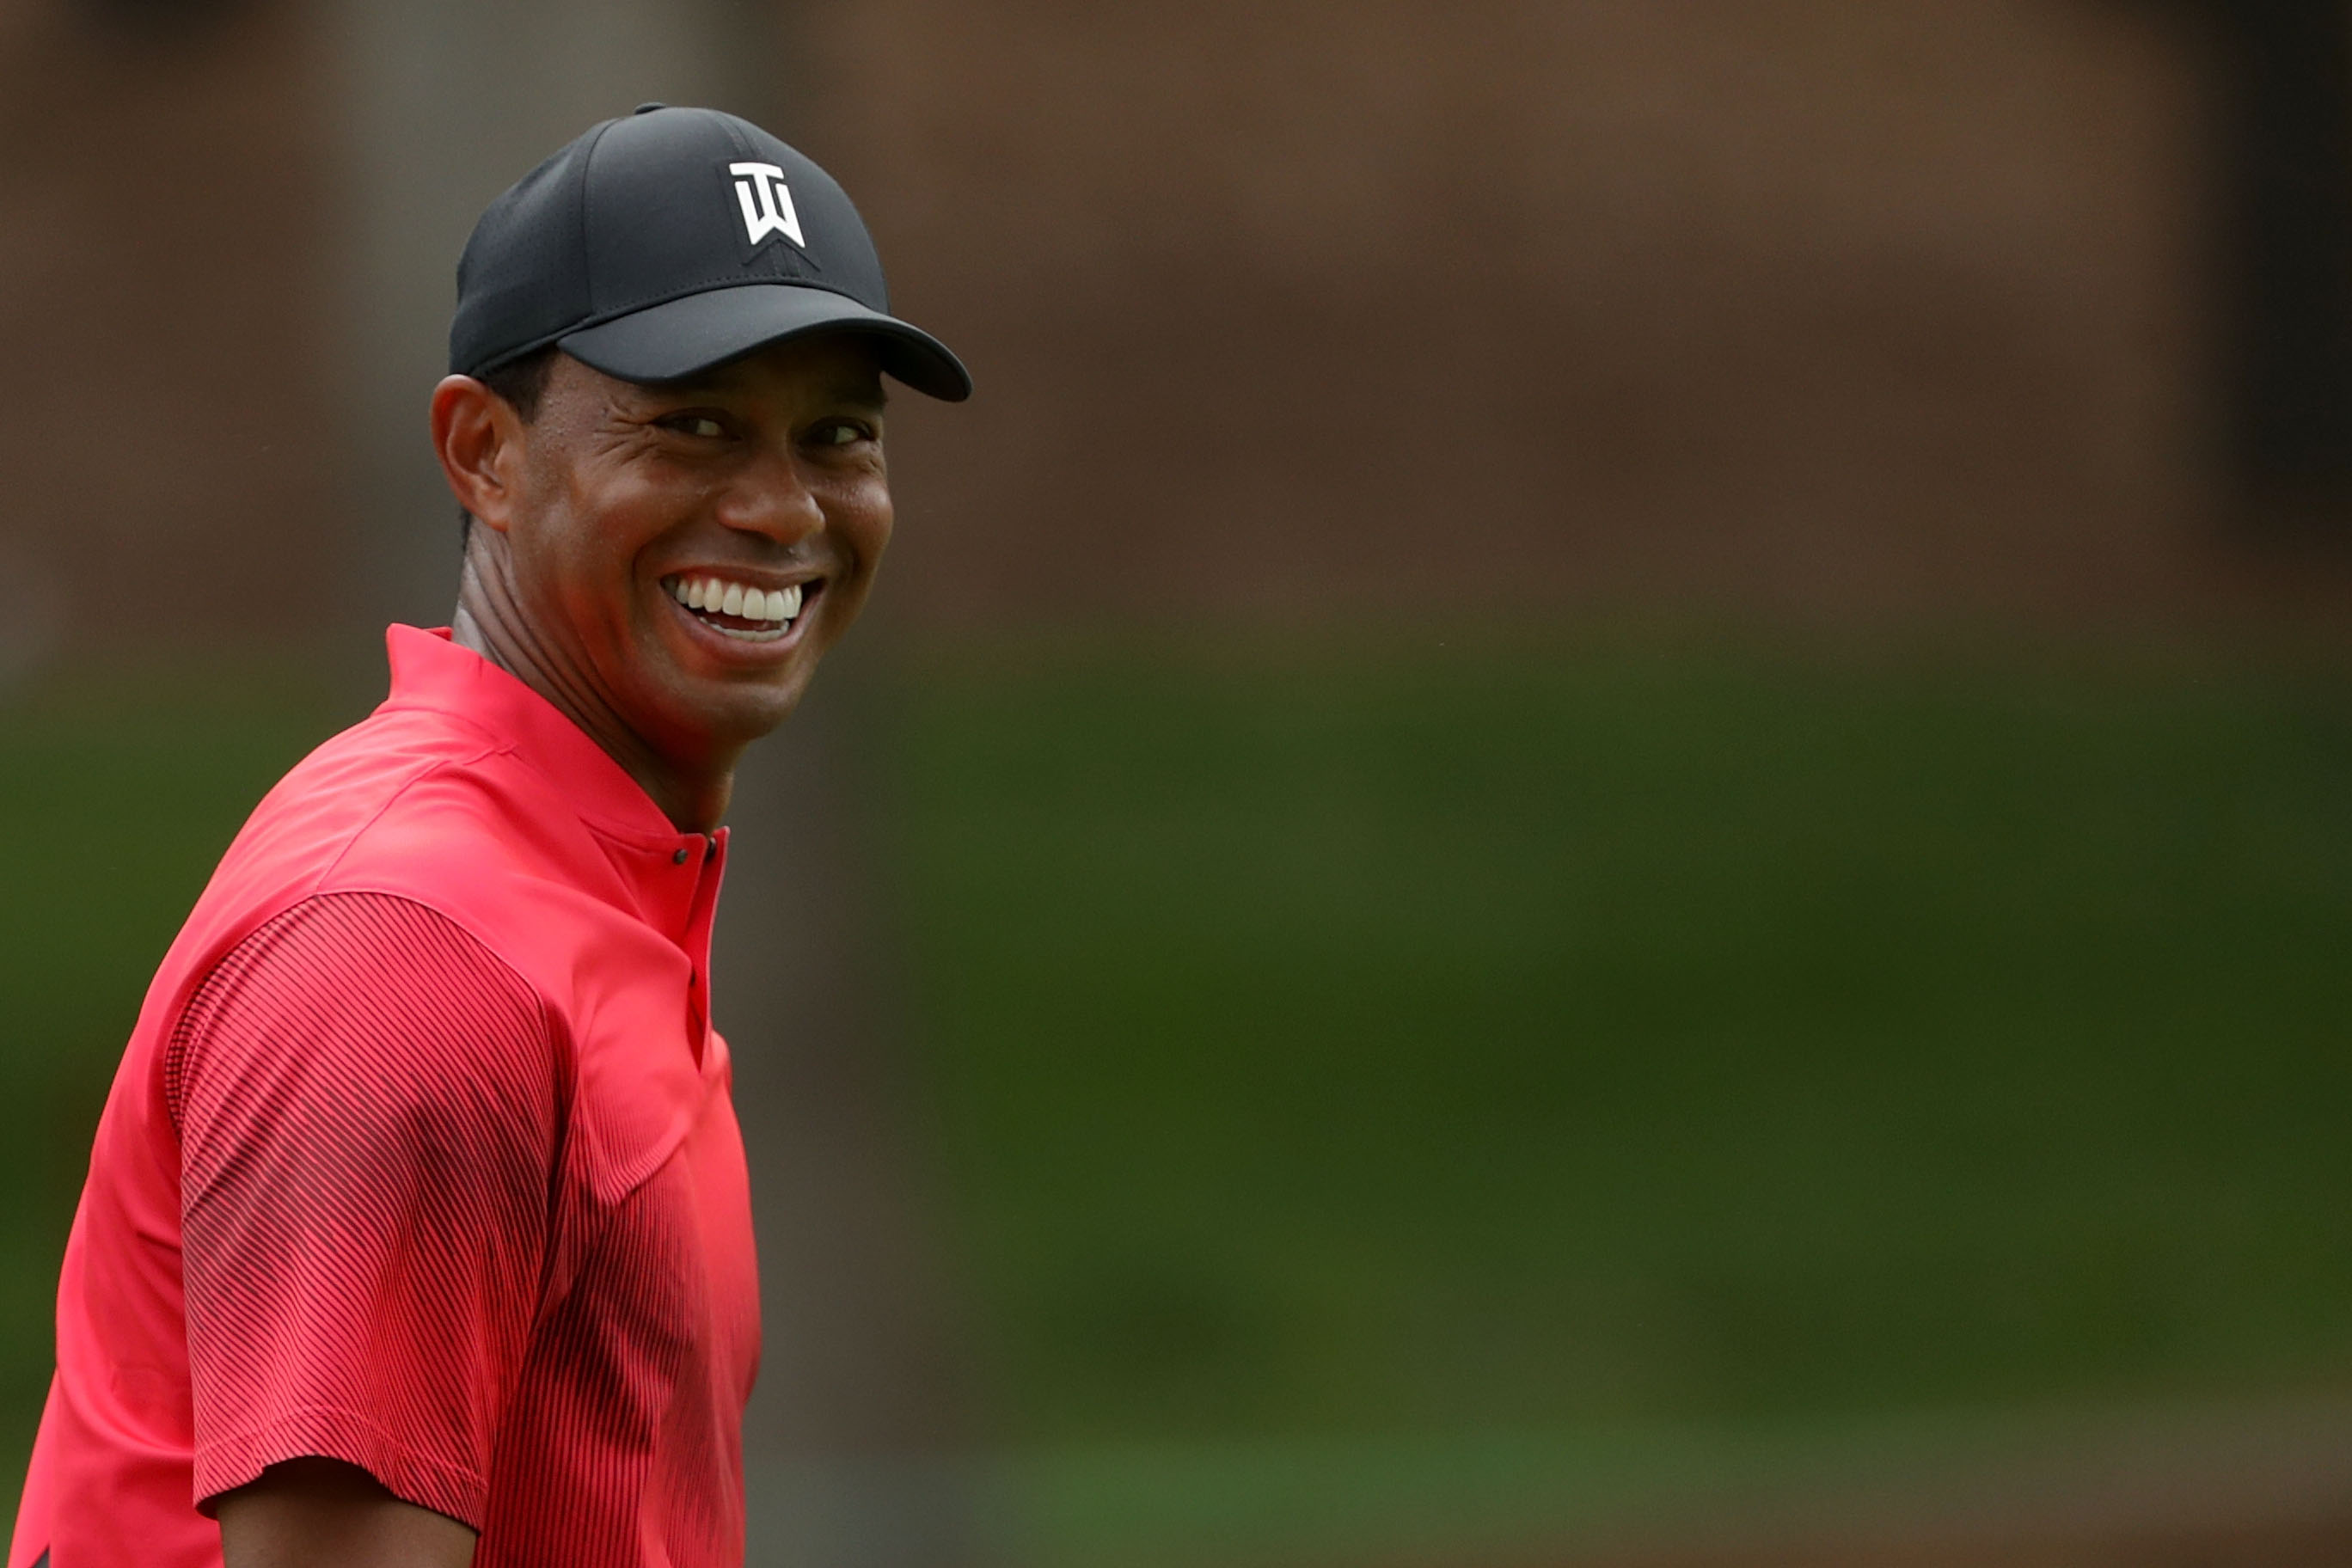 Tiger Woods flirts with cut; Rickie Fowler, Phil Mickelson falter at Players